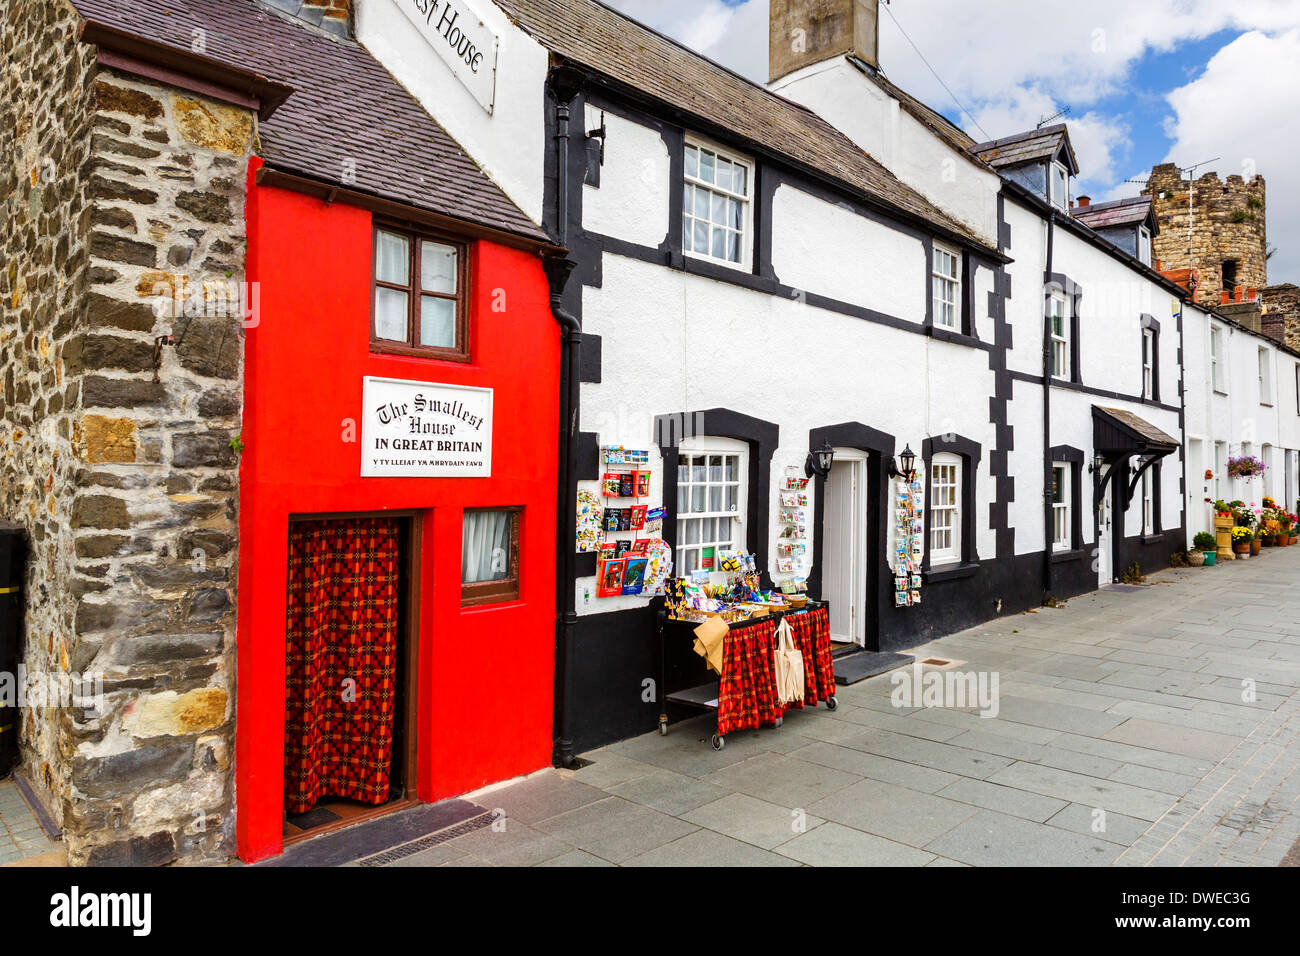 The Smallest House in Great Britain on the harbourfront in Conwy, North Wales, UK - Stock Image